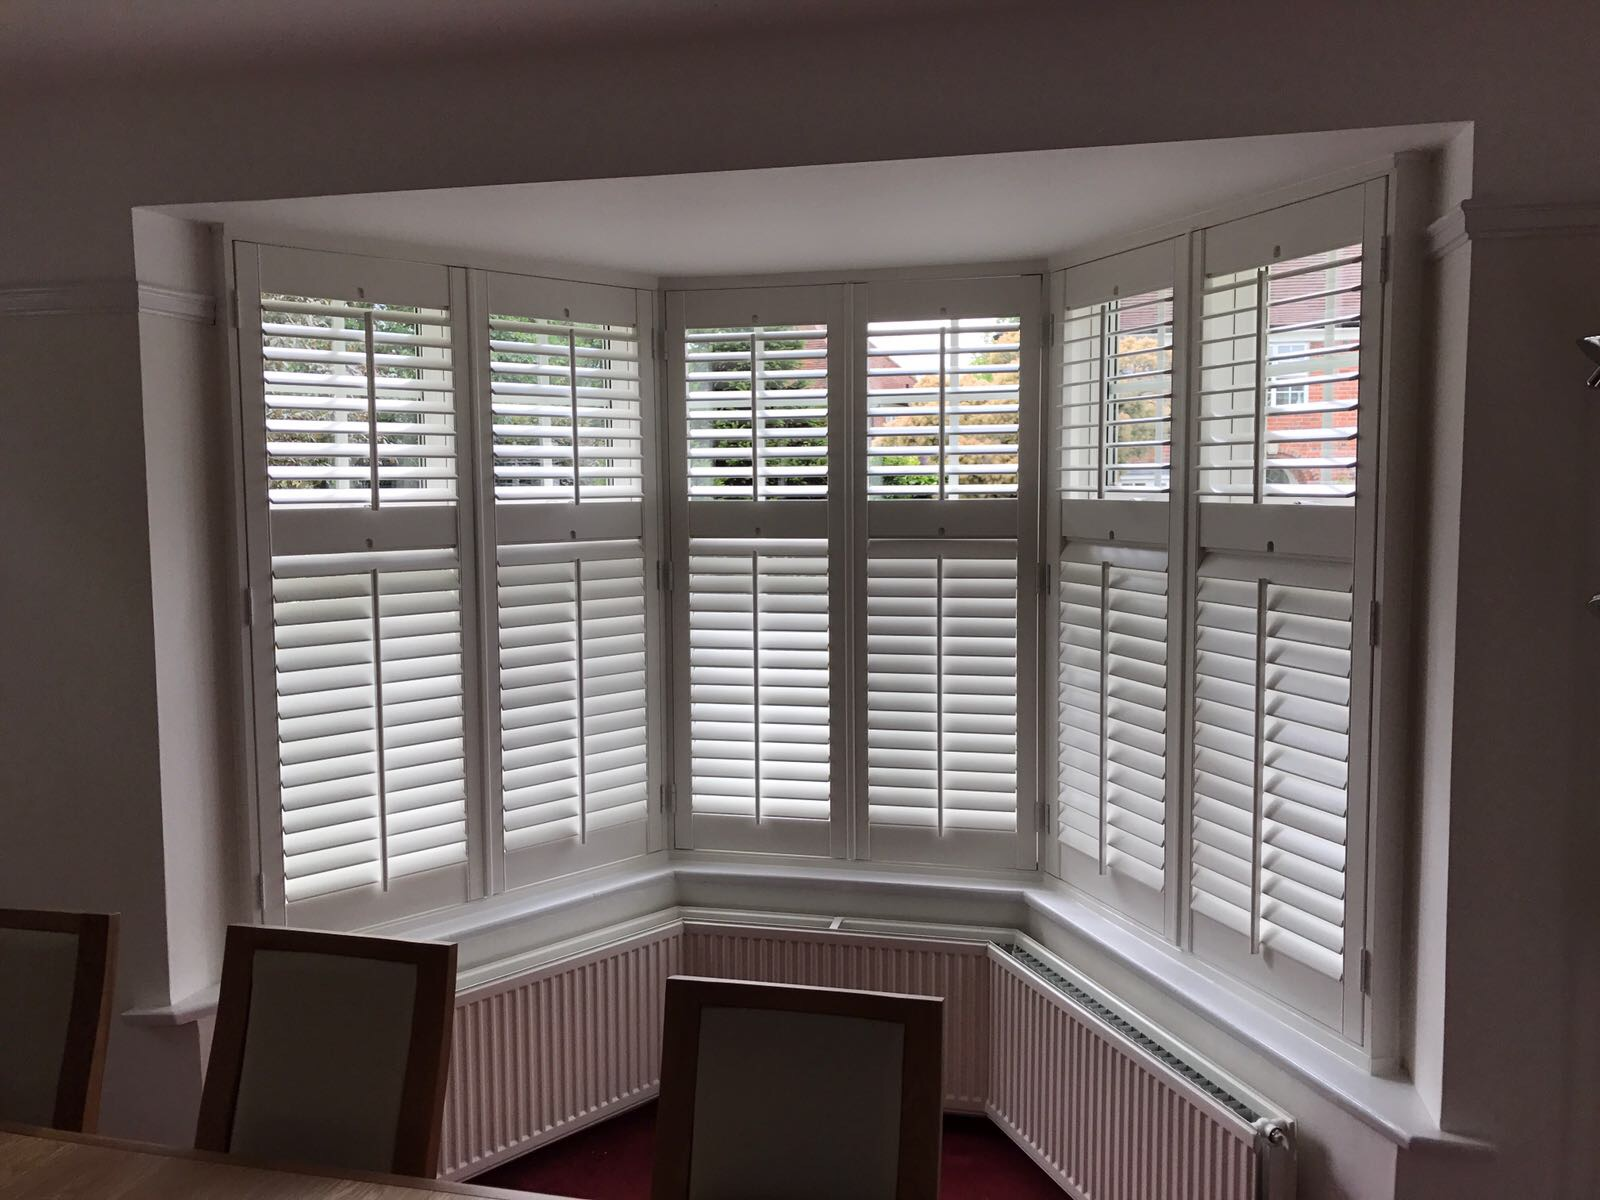 Wooden blinds over windows